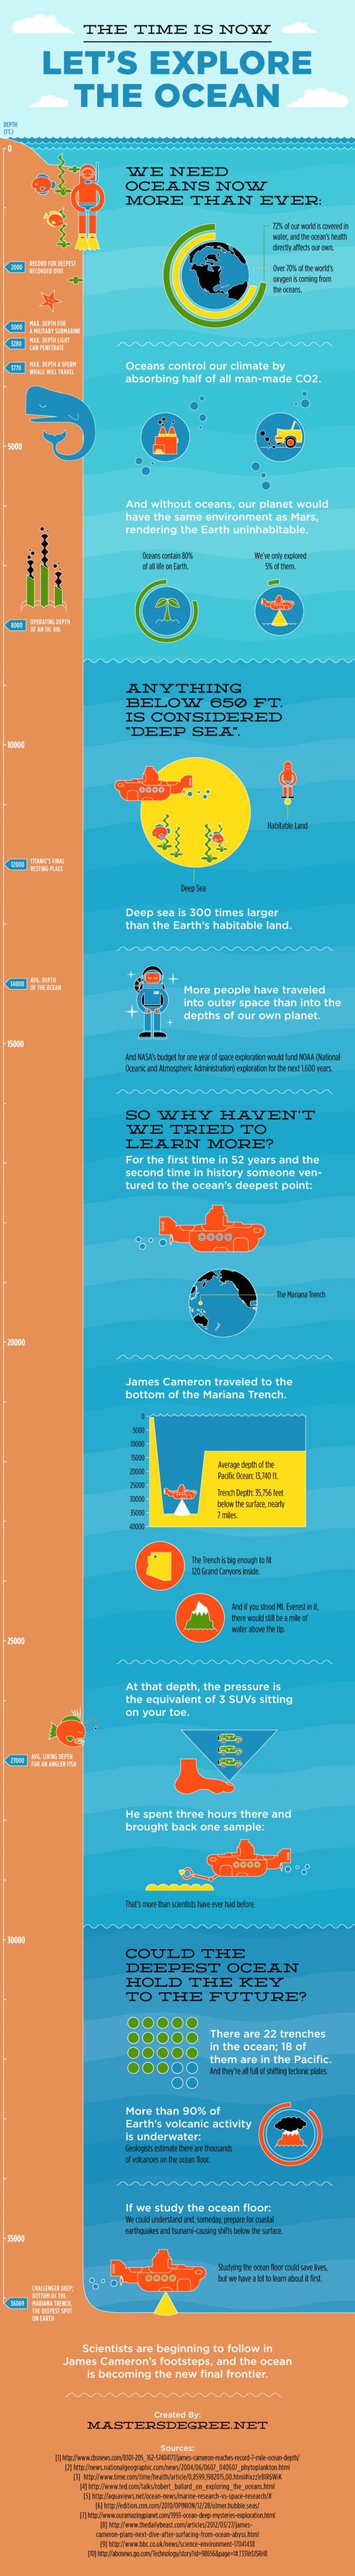 infographic exploring the ocean